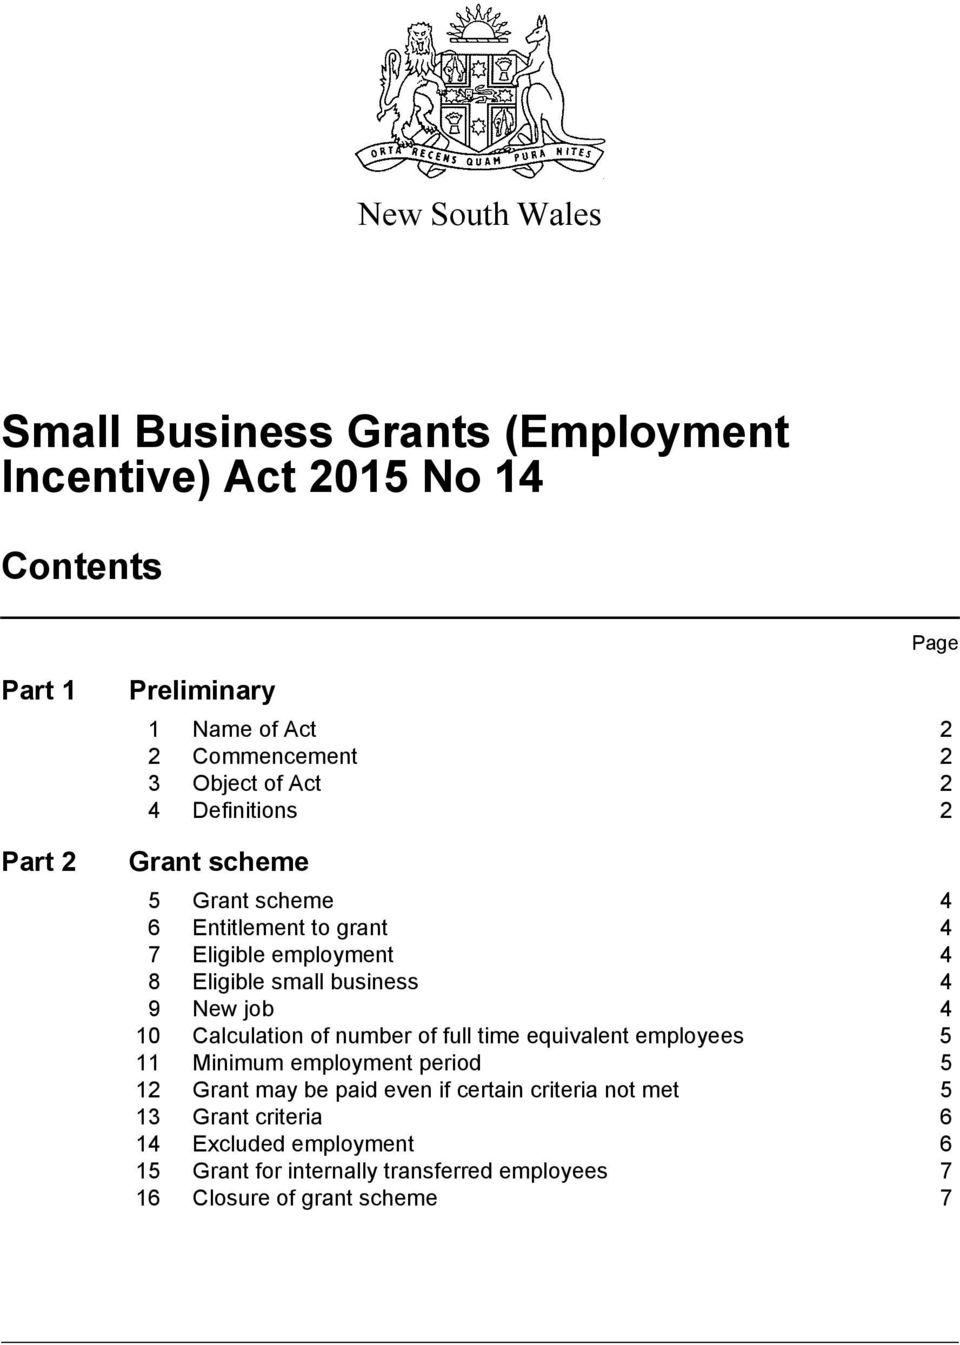 small business 4 9 New job 4 10 Calculation of number of full time equivalent employees 5 11 Minimum employment period 5 12 Grant may be paid